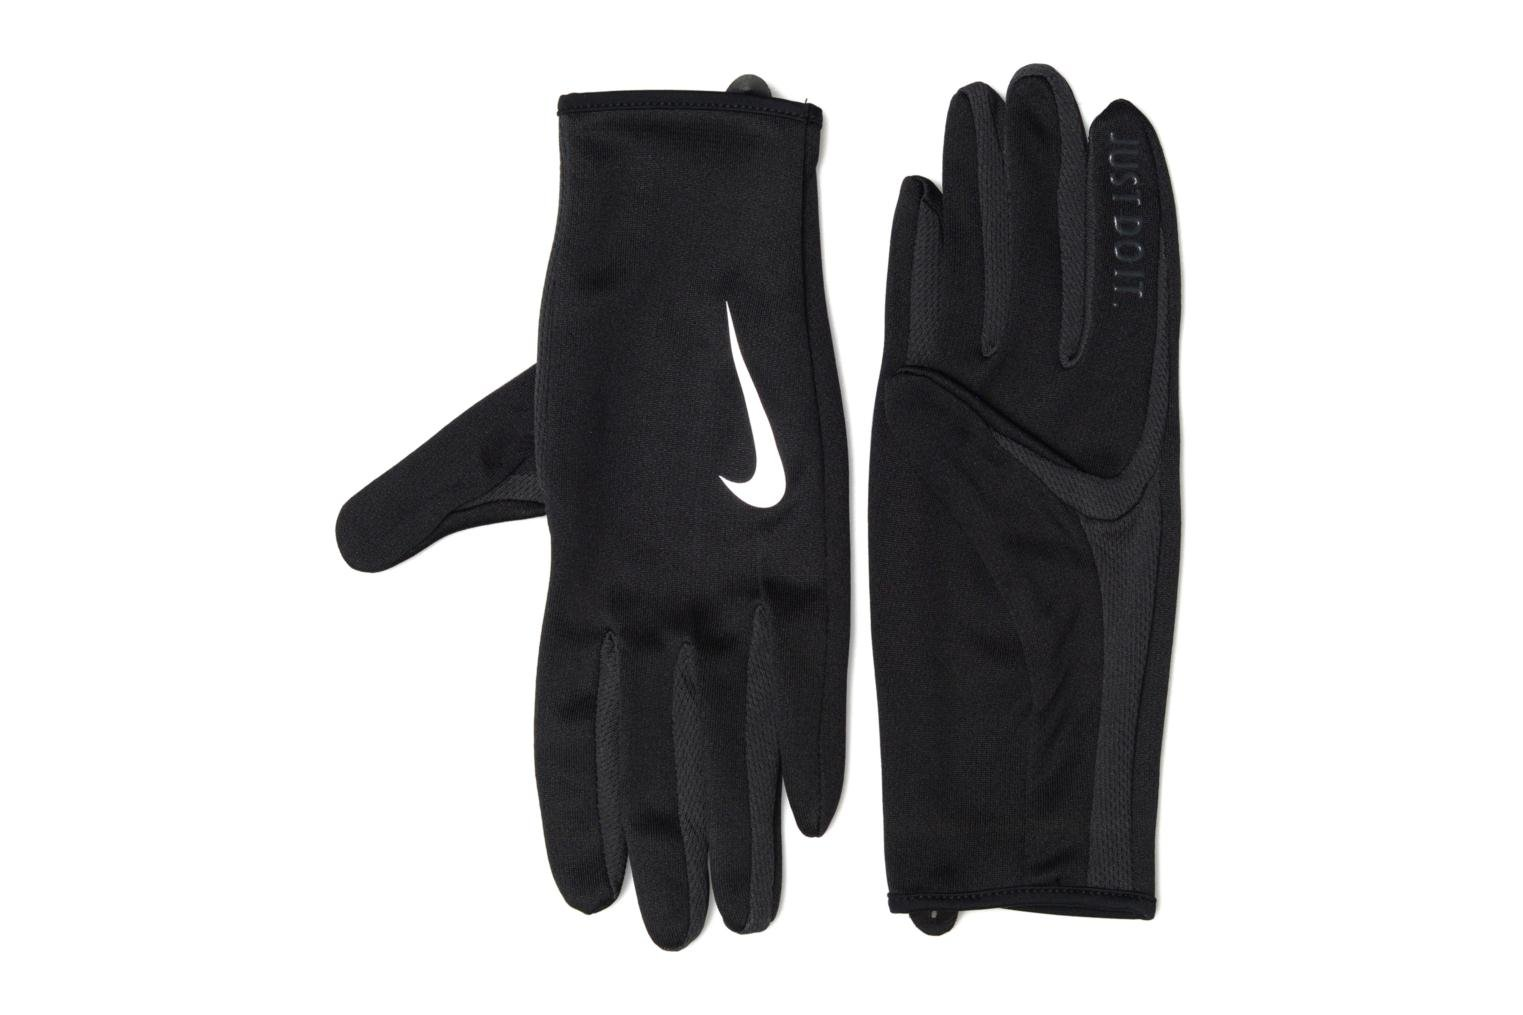 Divers Nike MEN'S RALLY RUN GLOVES 2.0 Noir vue détail/paire